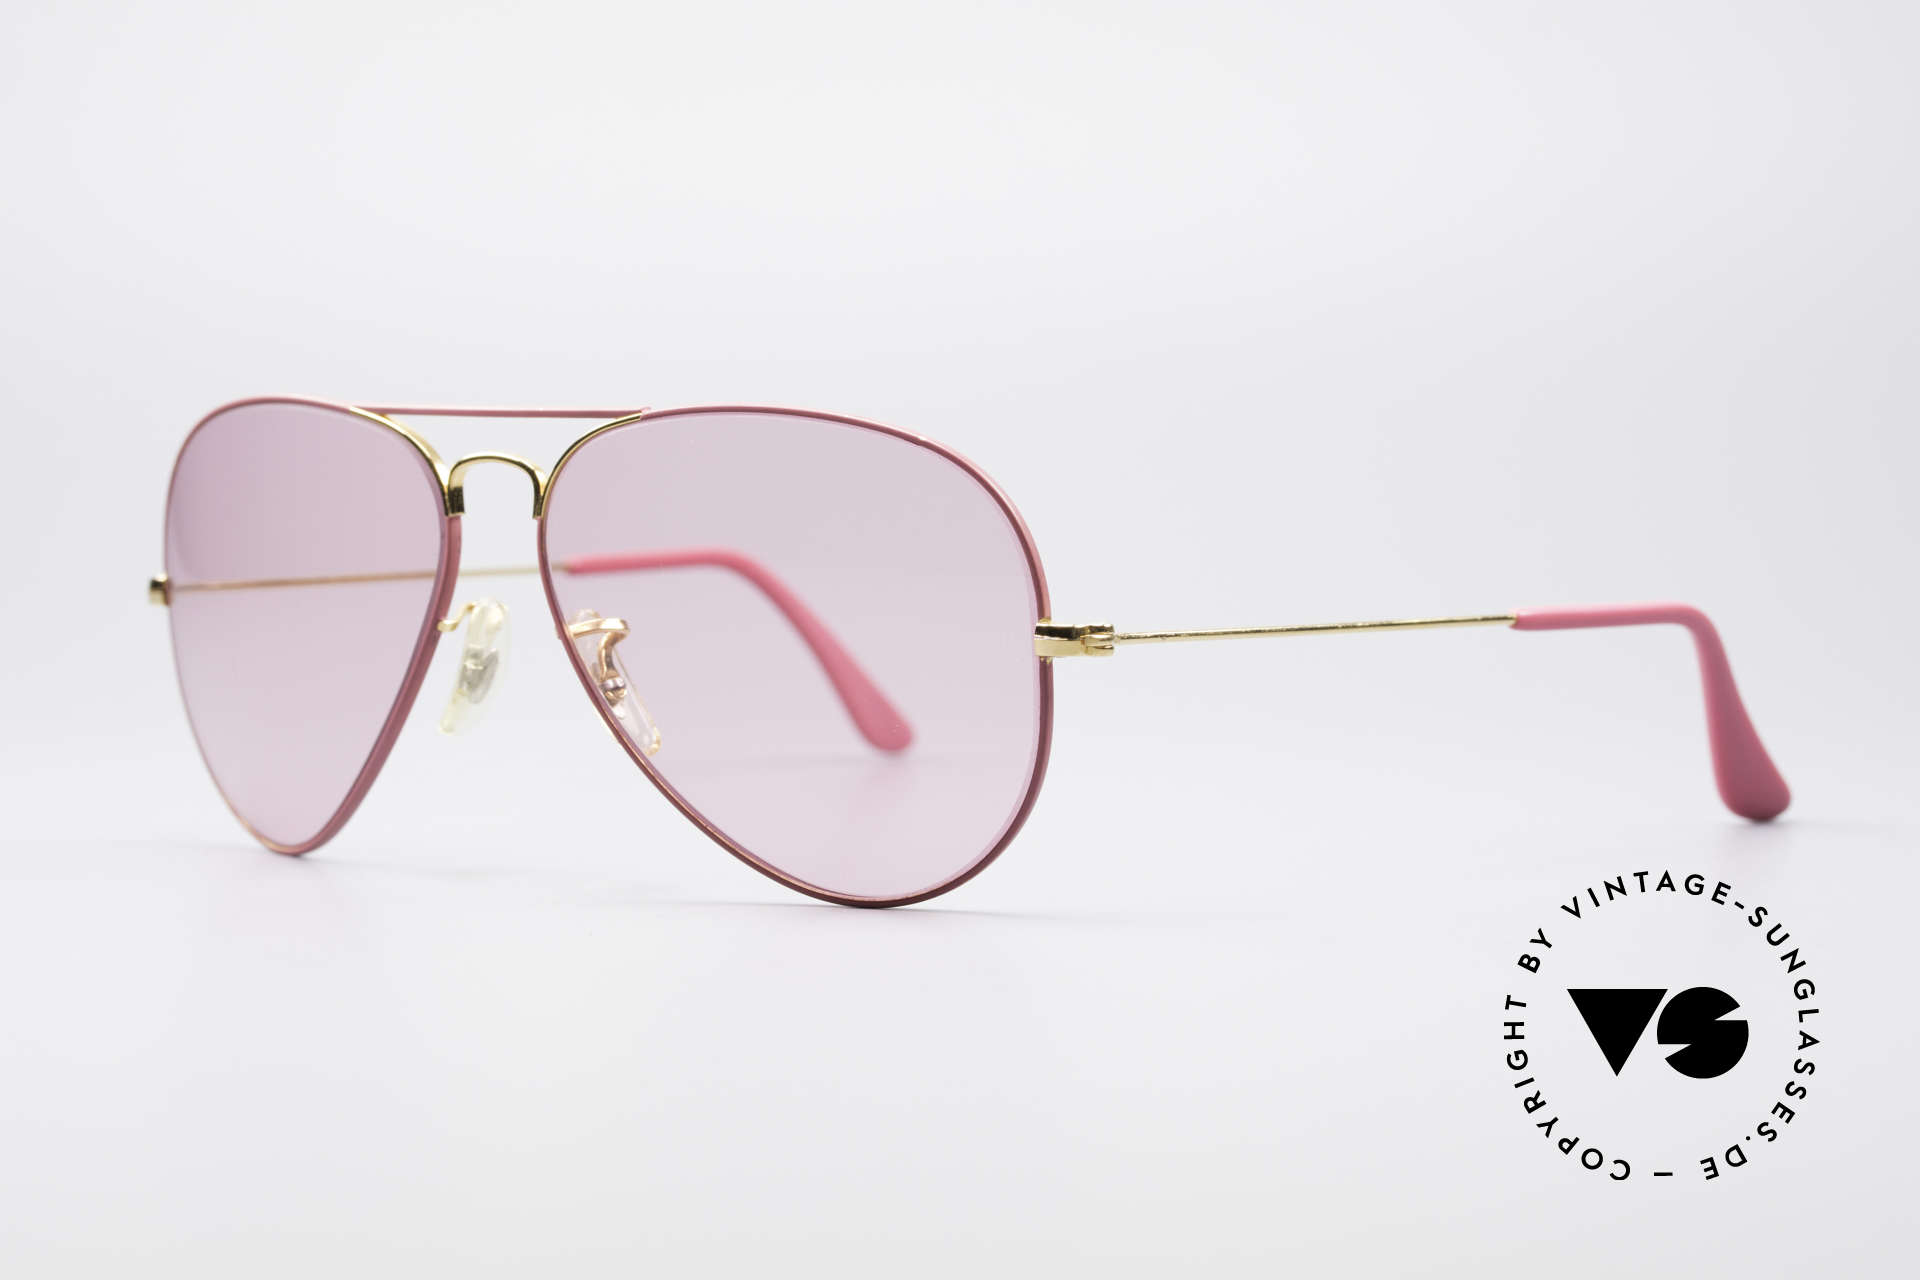 Ray Ban Large Metal Pink Ladies Sunglasses, pink tinted B&L mineral lenses; 100% UV protect., Made for Men